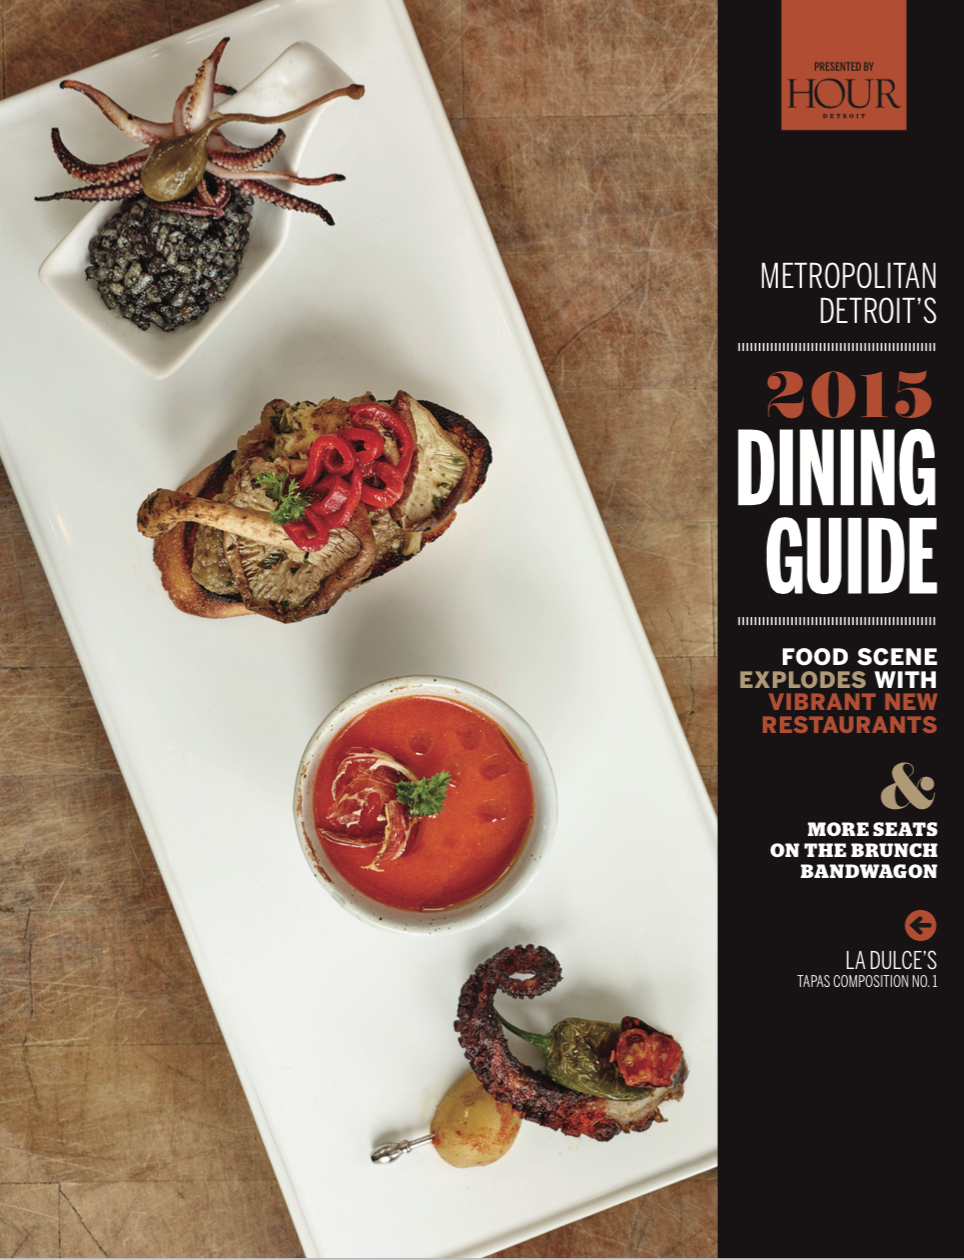 Metropolitan detroit dining guide 2015 bistro 82 for Restaurant guide